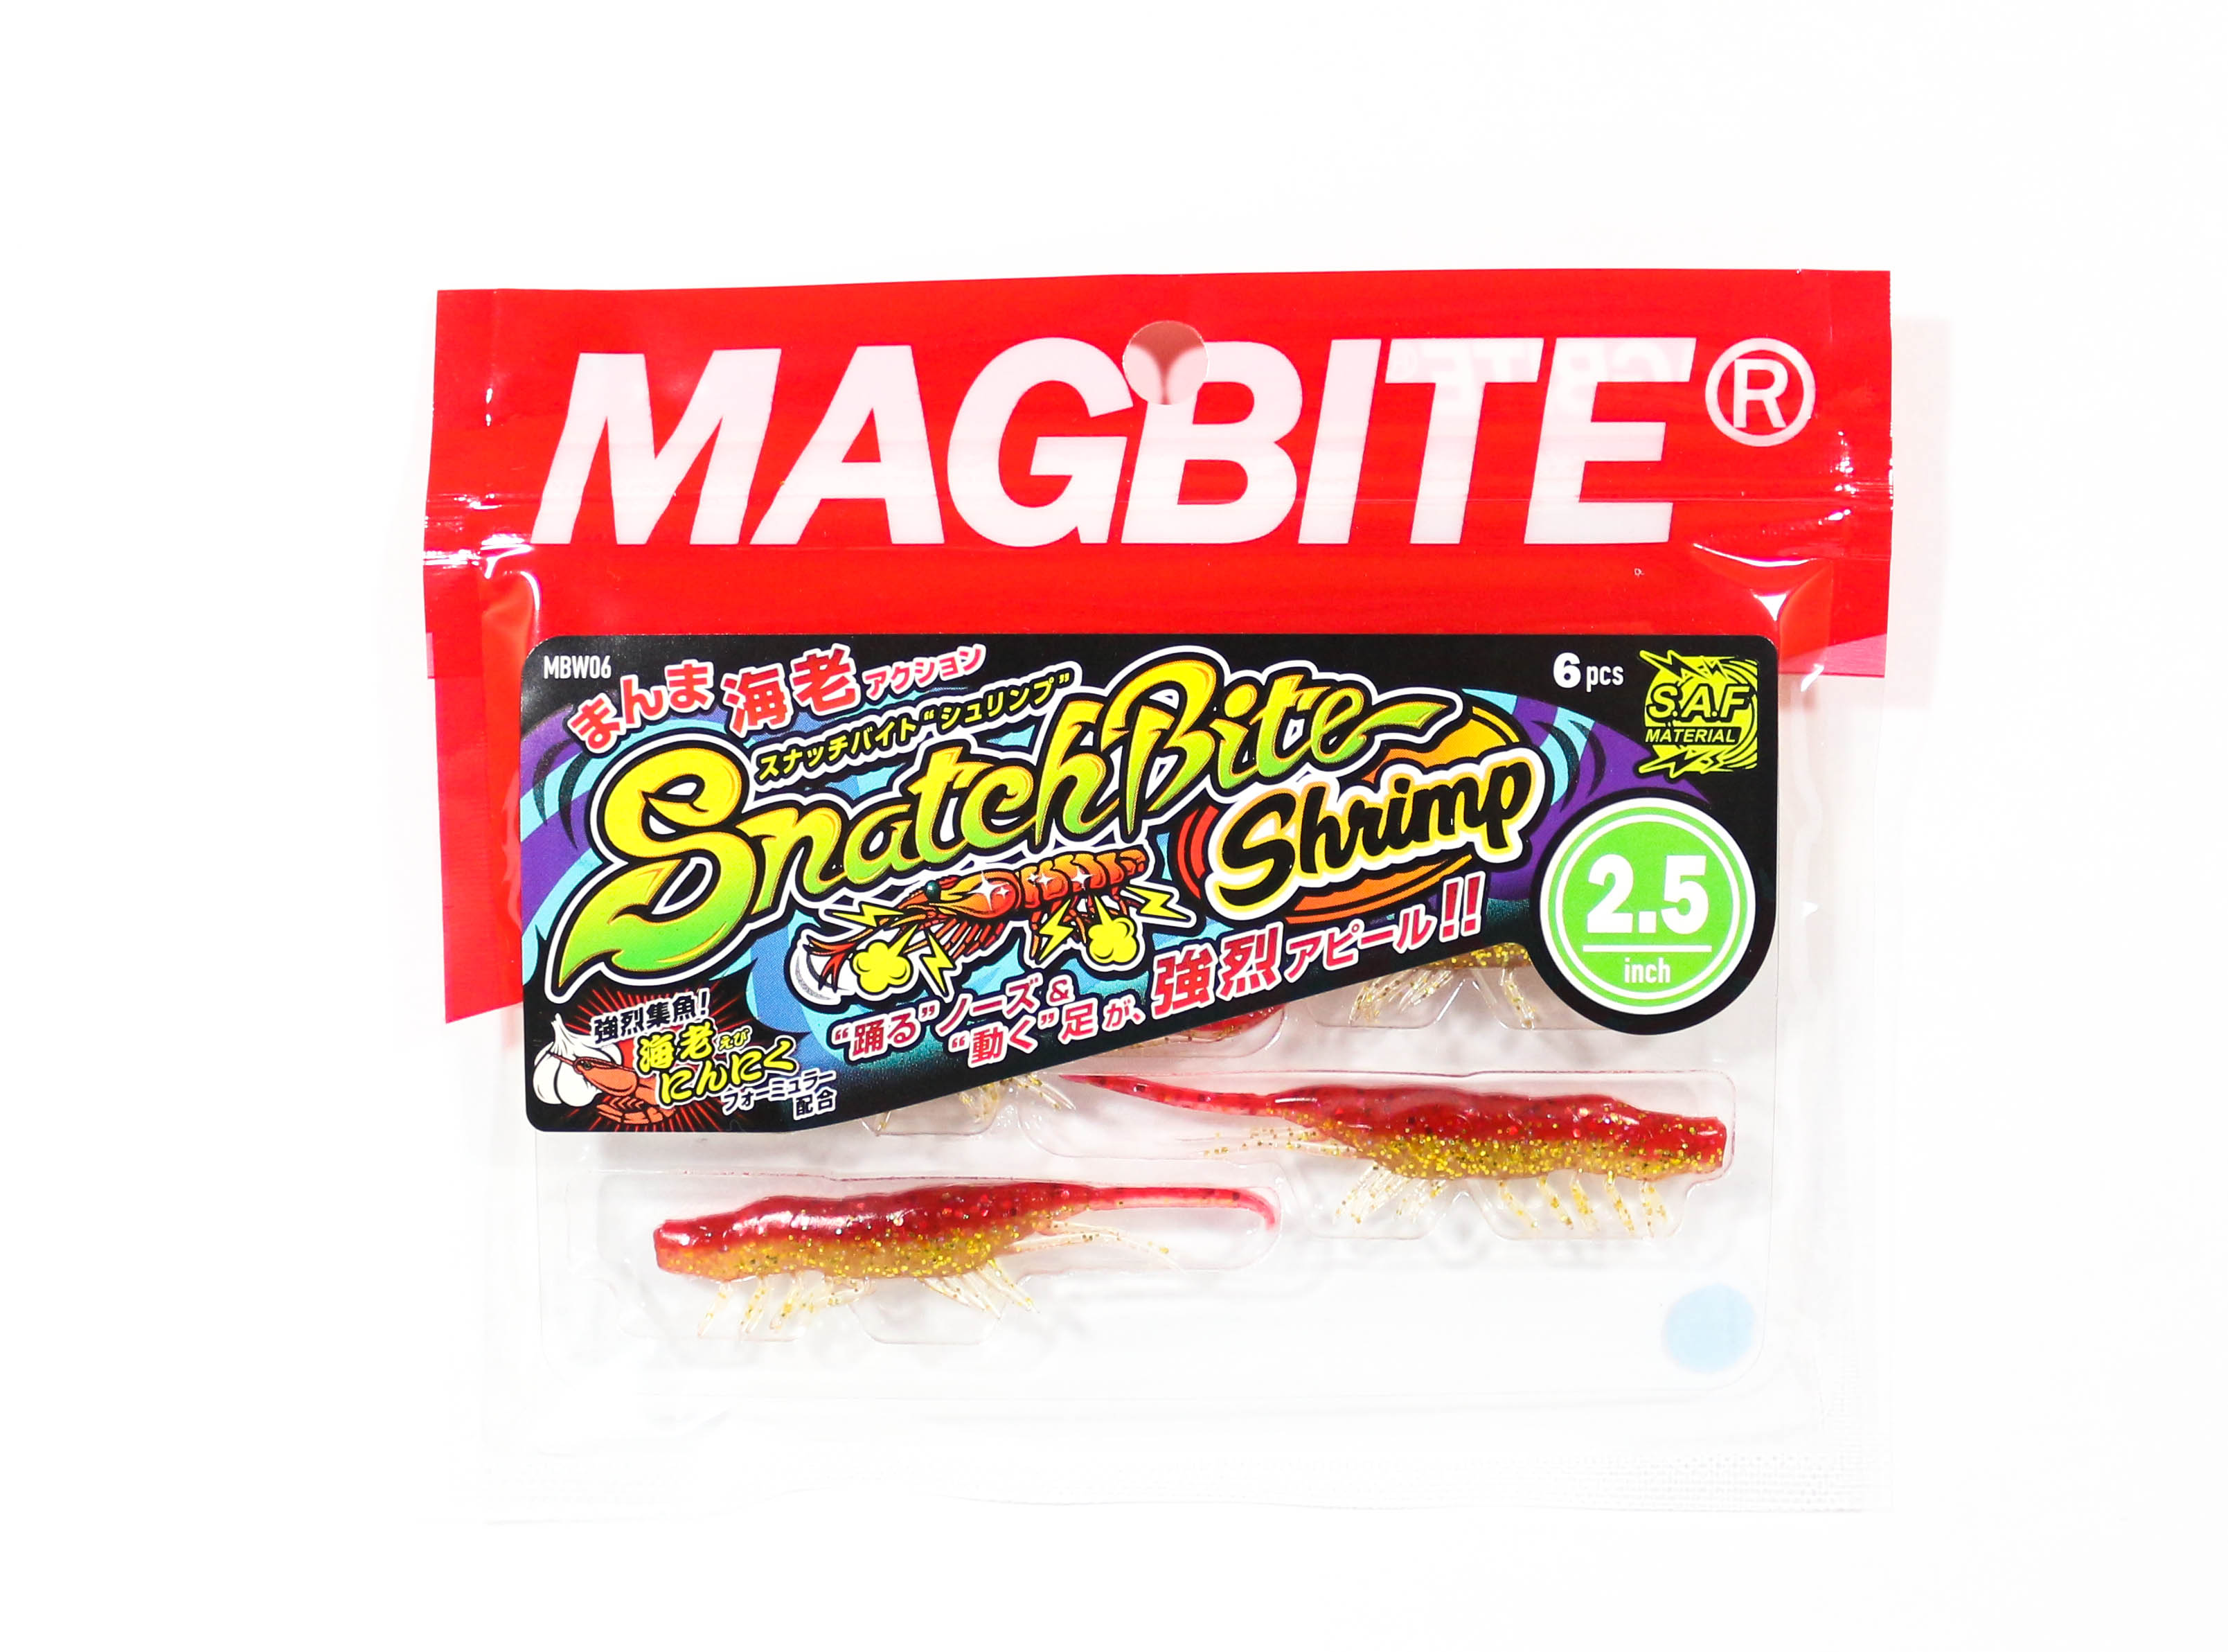 Harimitsu Mag Bite Snatch Shrimp 2.5 Inch 6 per pack 01 (6492)